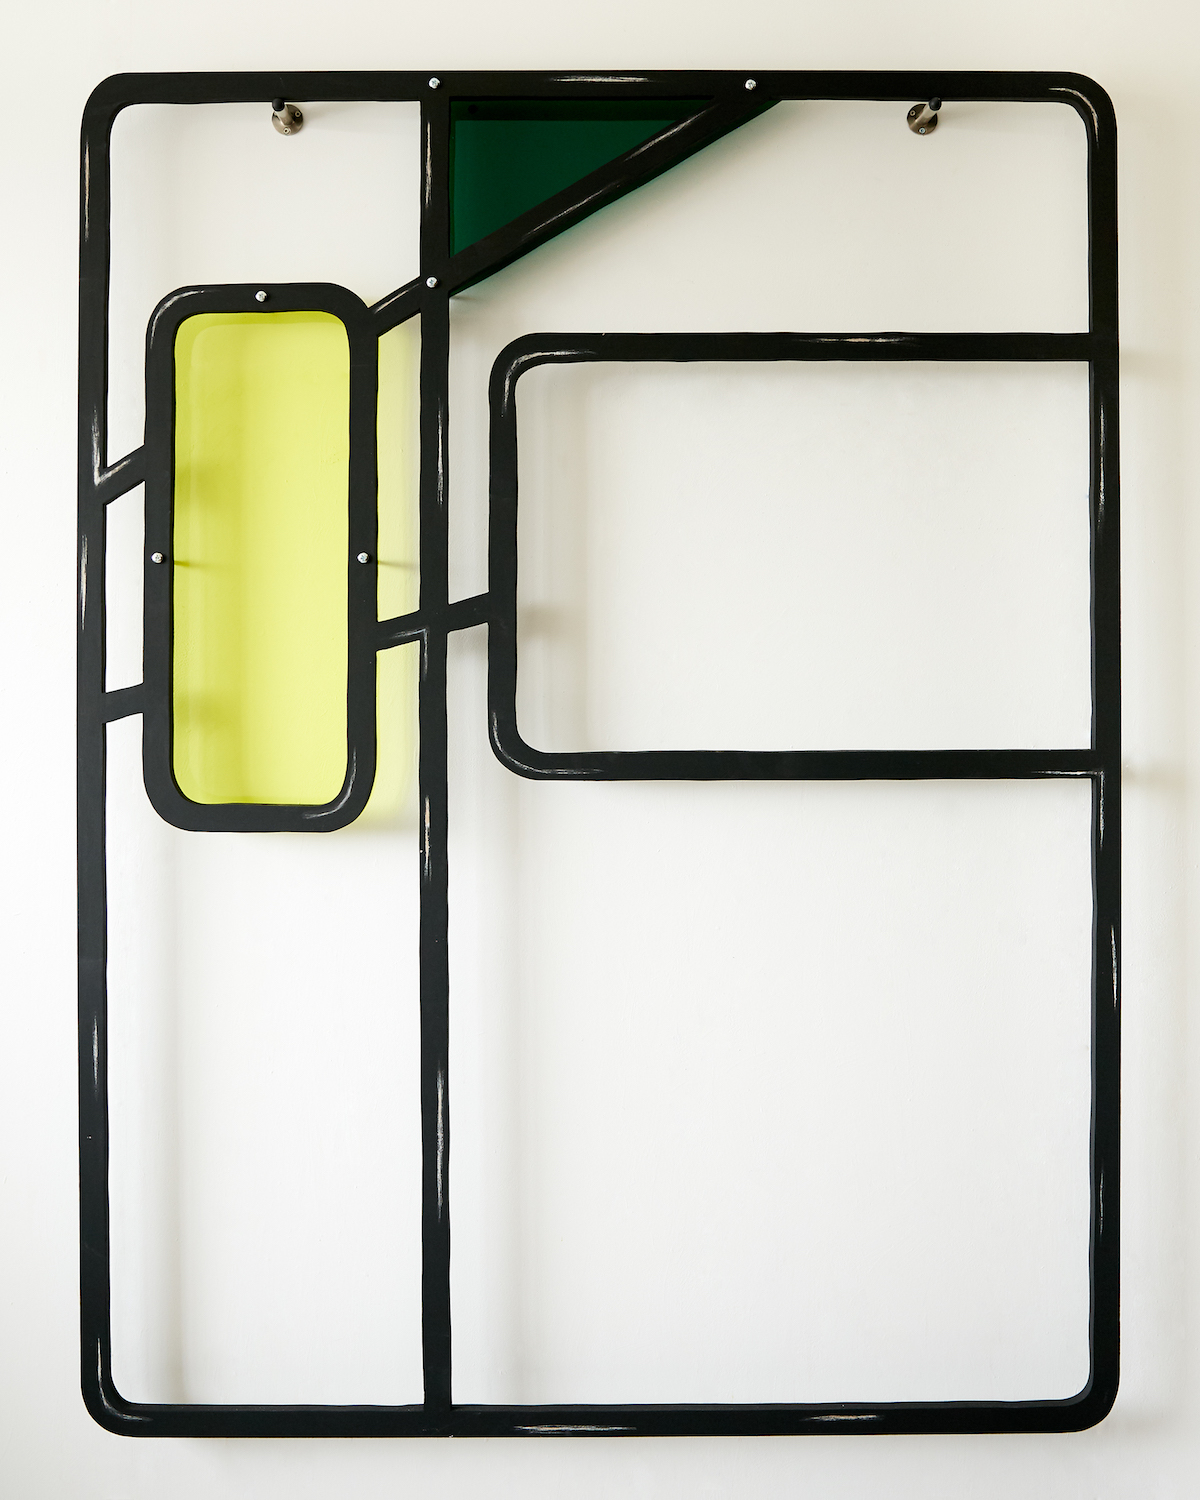 Milly Peck, Alight III, 2020. Emulsion on wood, perspex, coloured pencil, bolts. 161 x 122 x 7 cm.